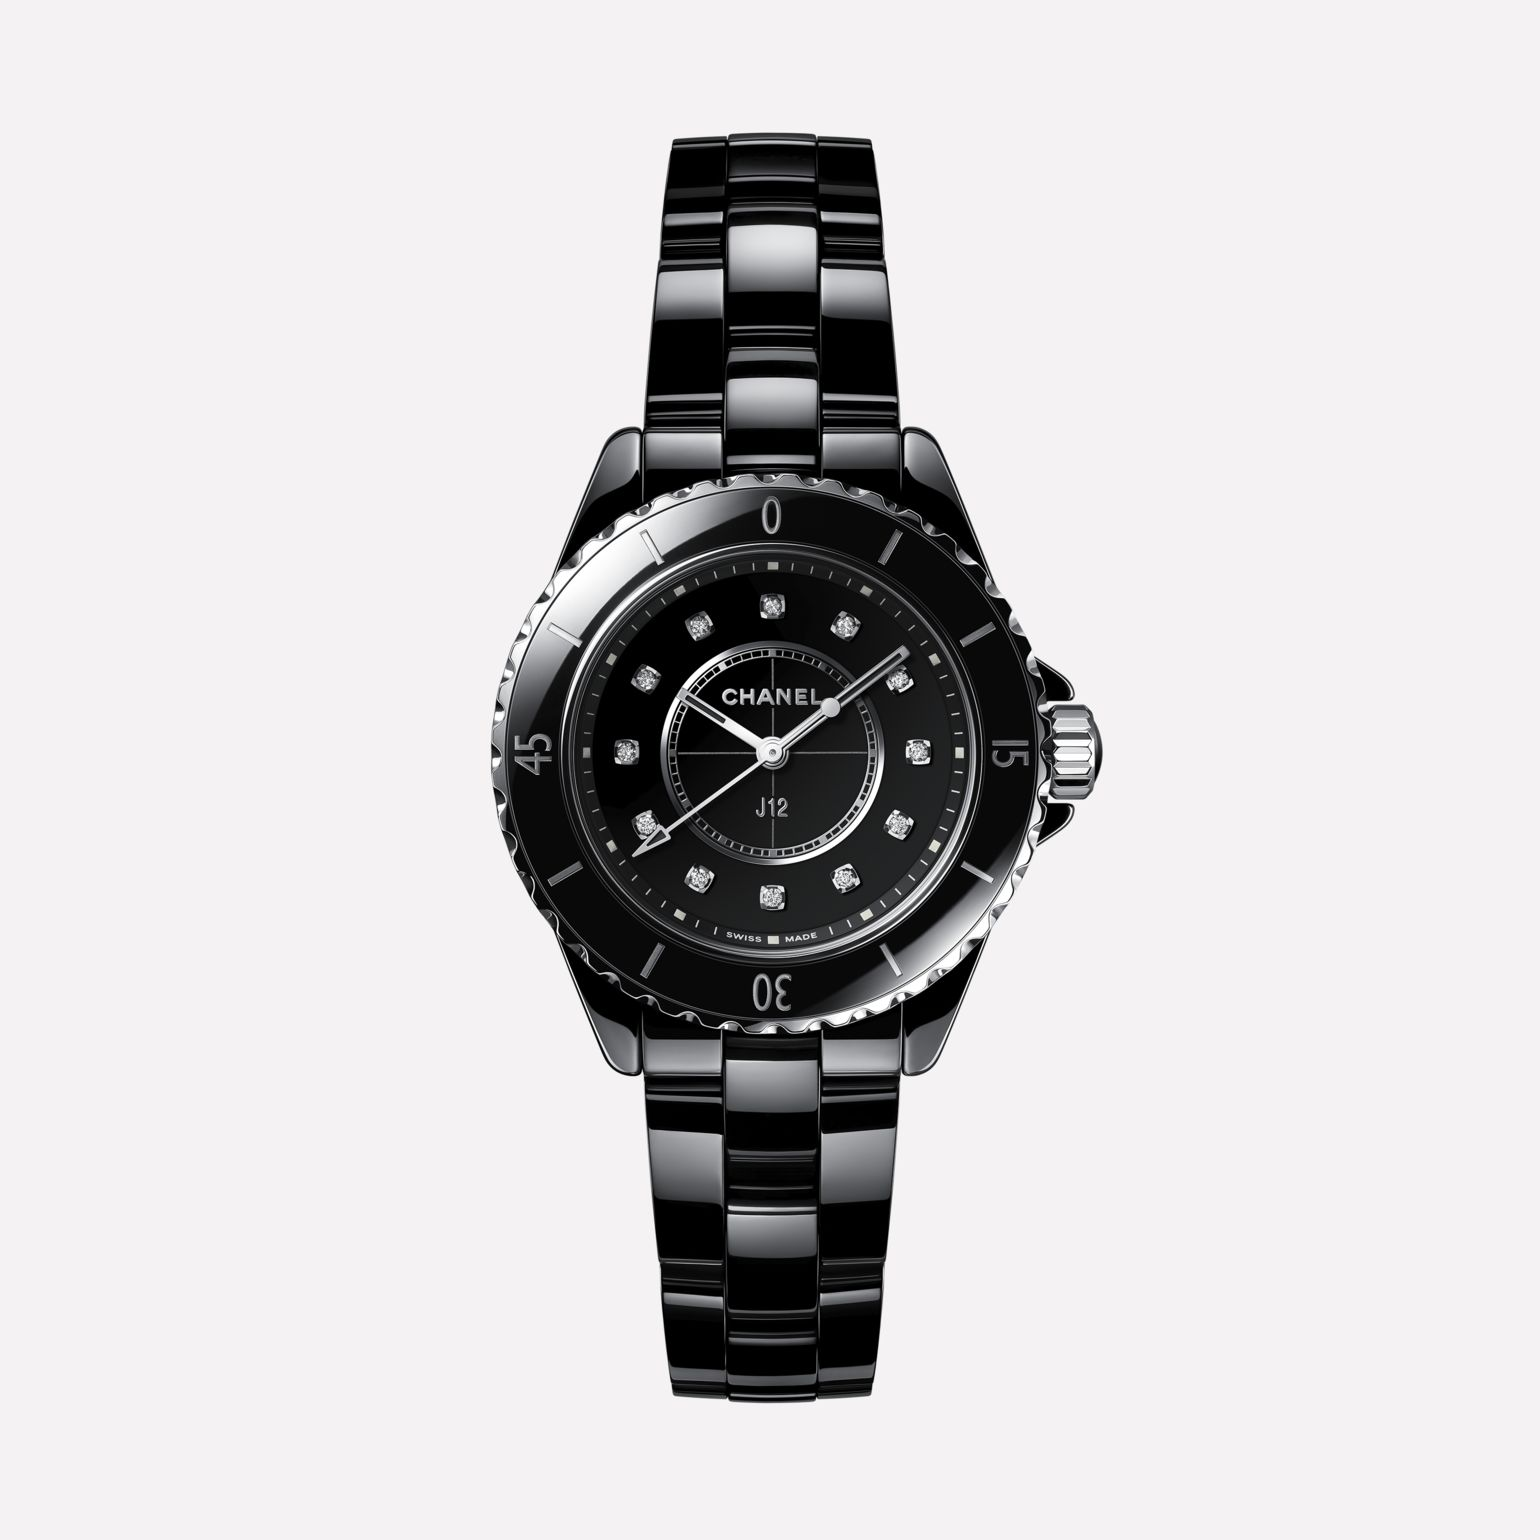 J12 Watch, 33 mm Black highly resistant ceramic, steel and diamonds